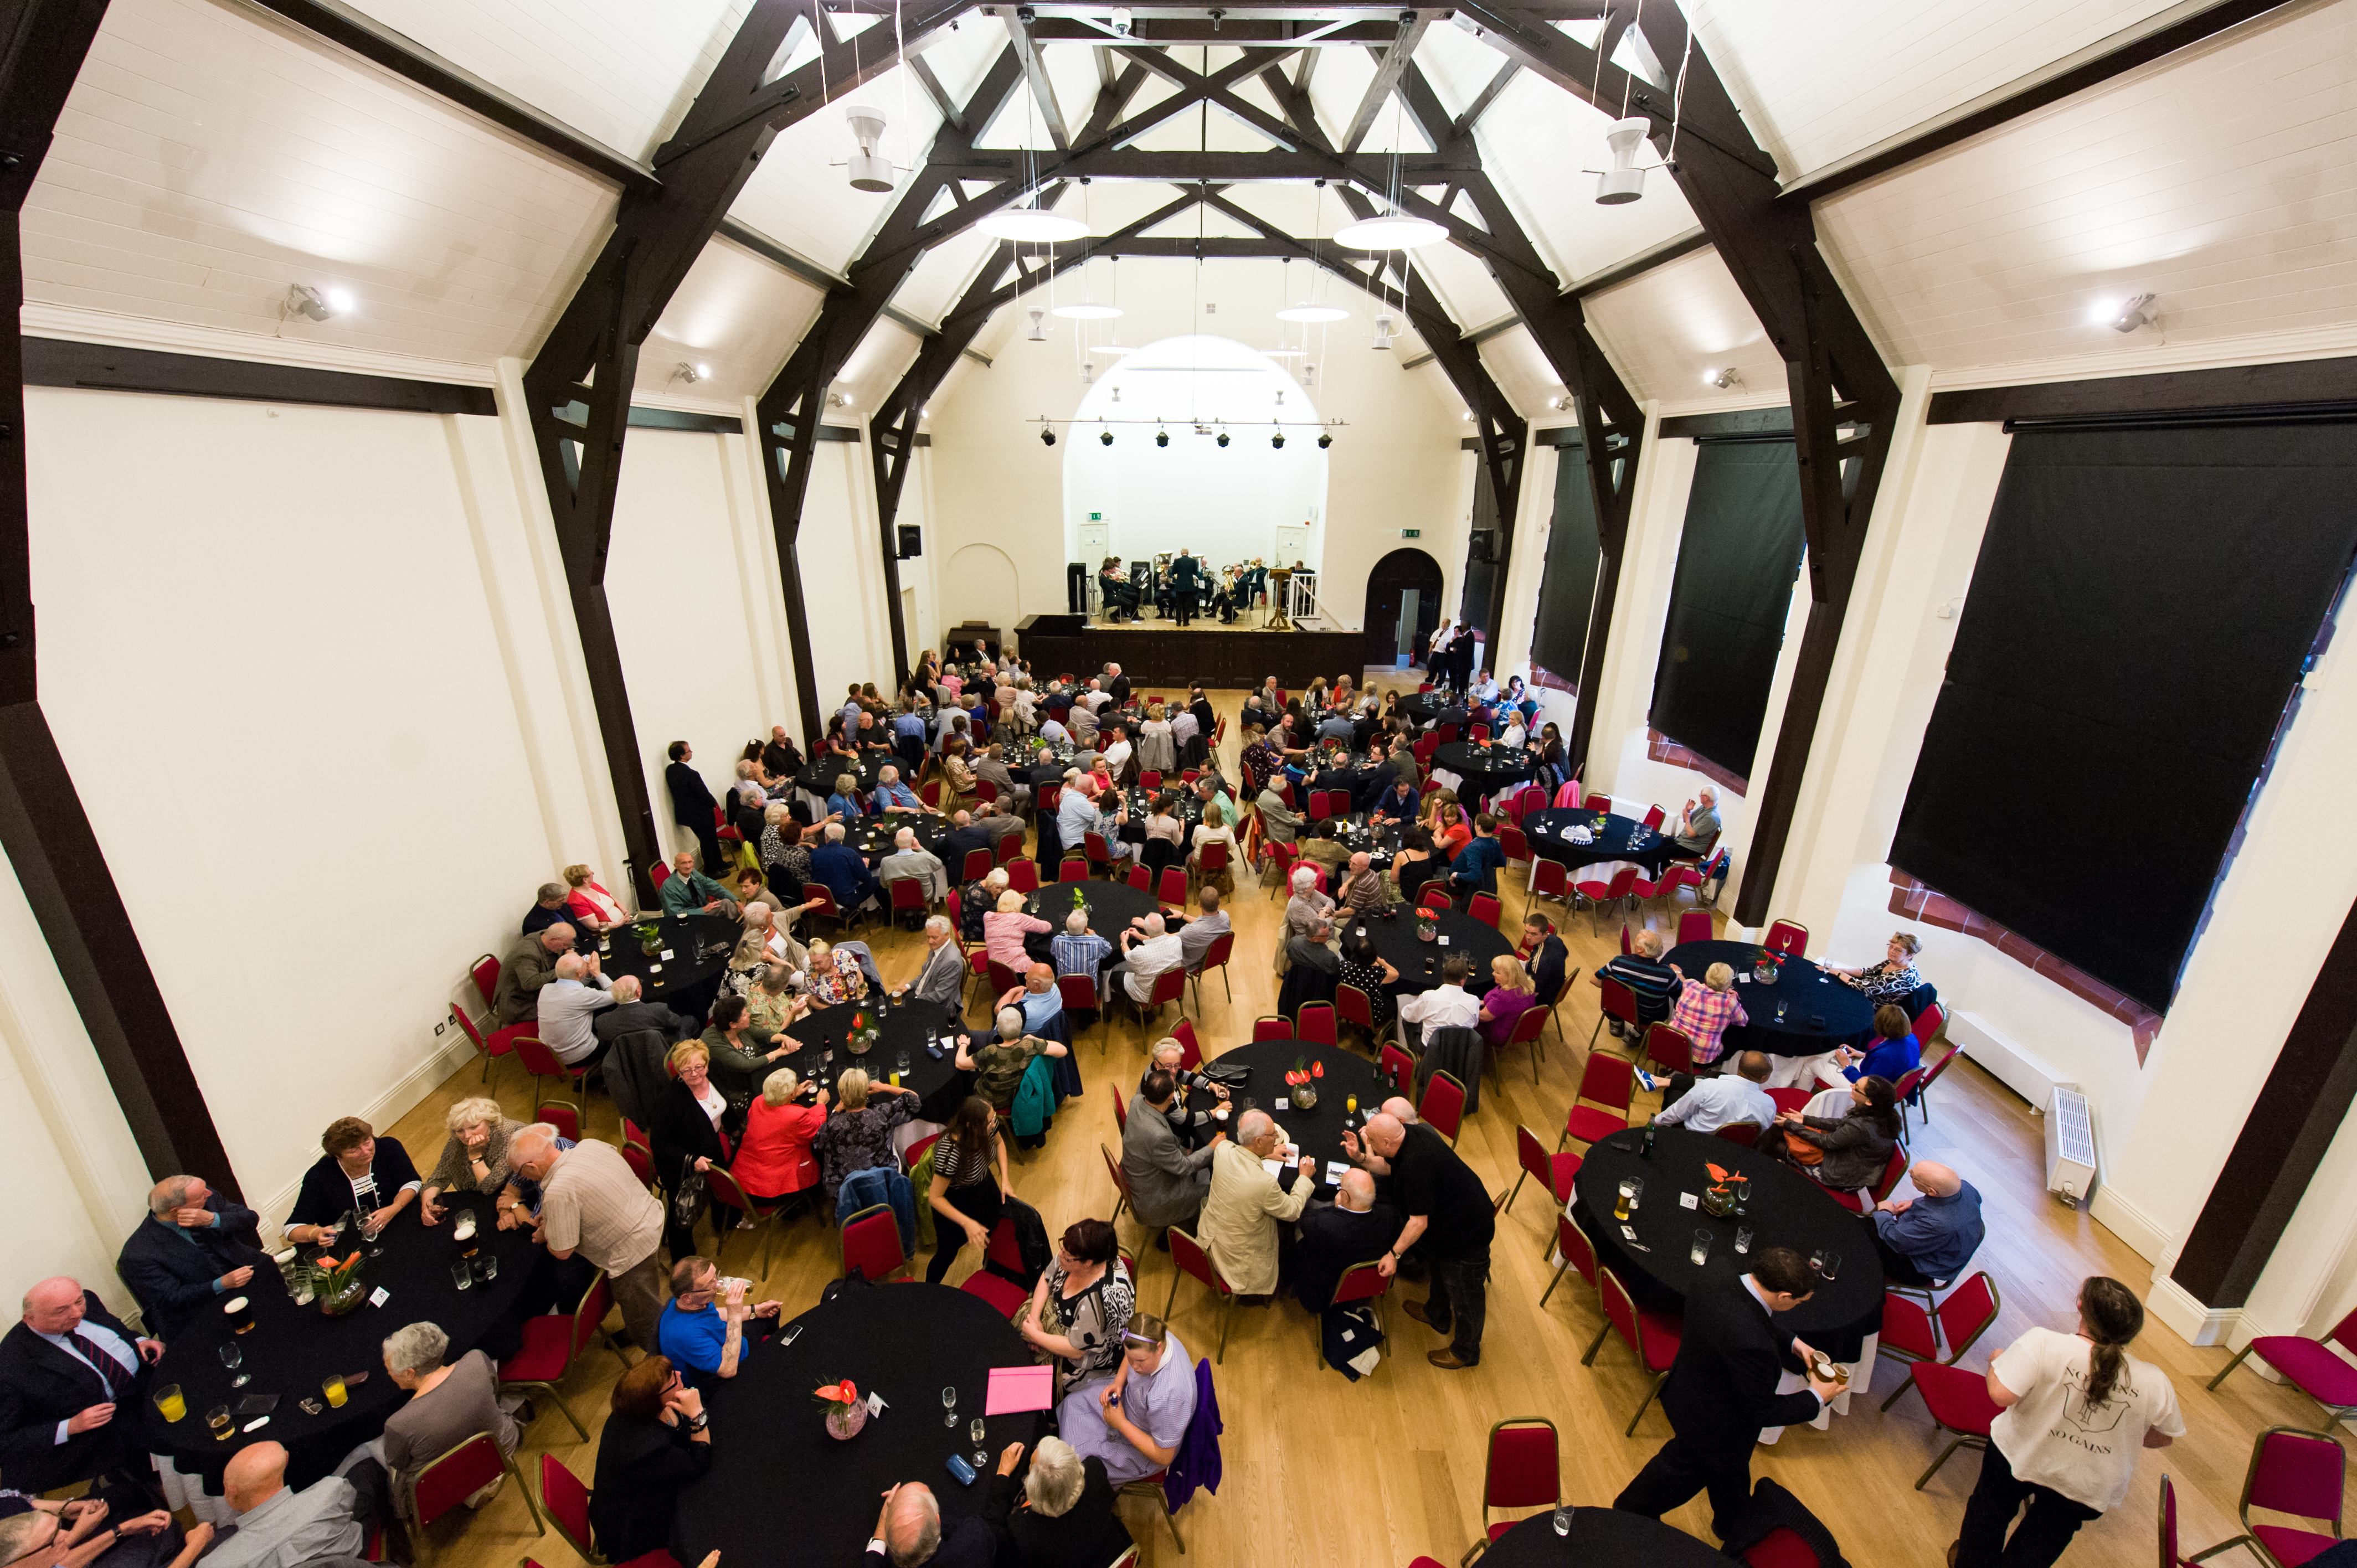 The Florrie's refurbished hall, filled with people attending an event